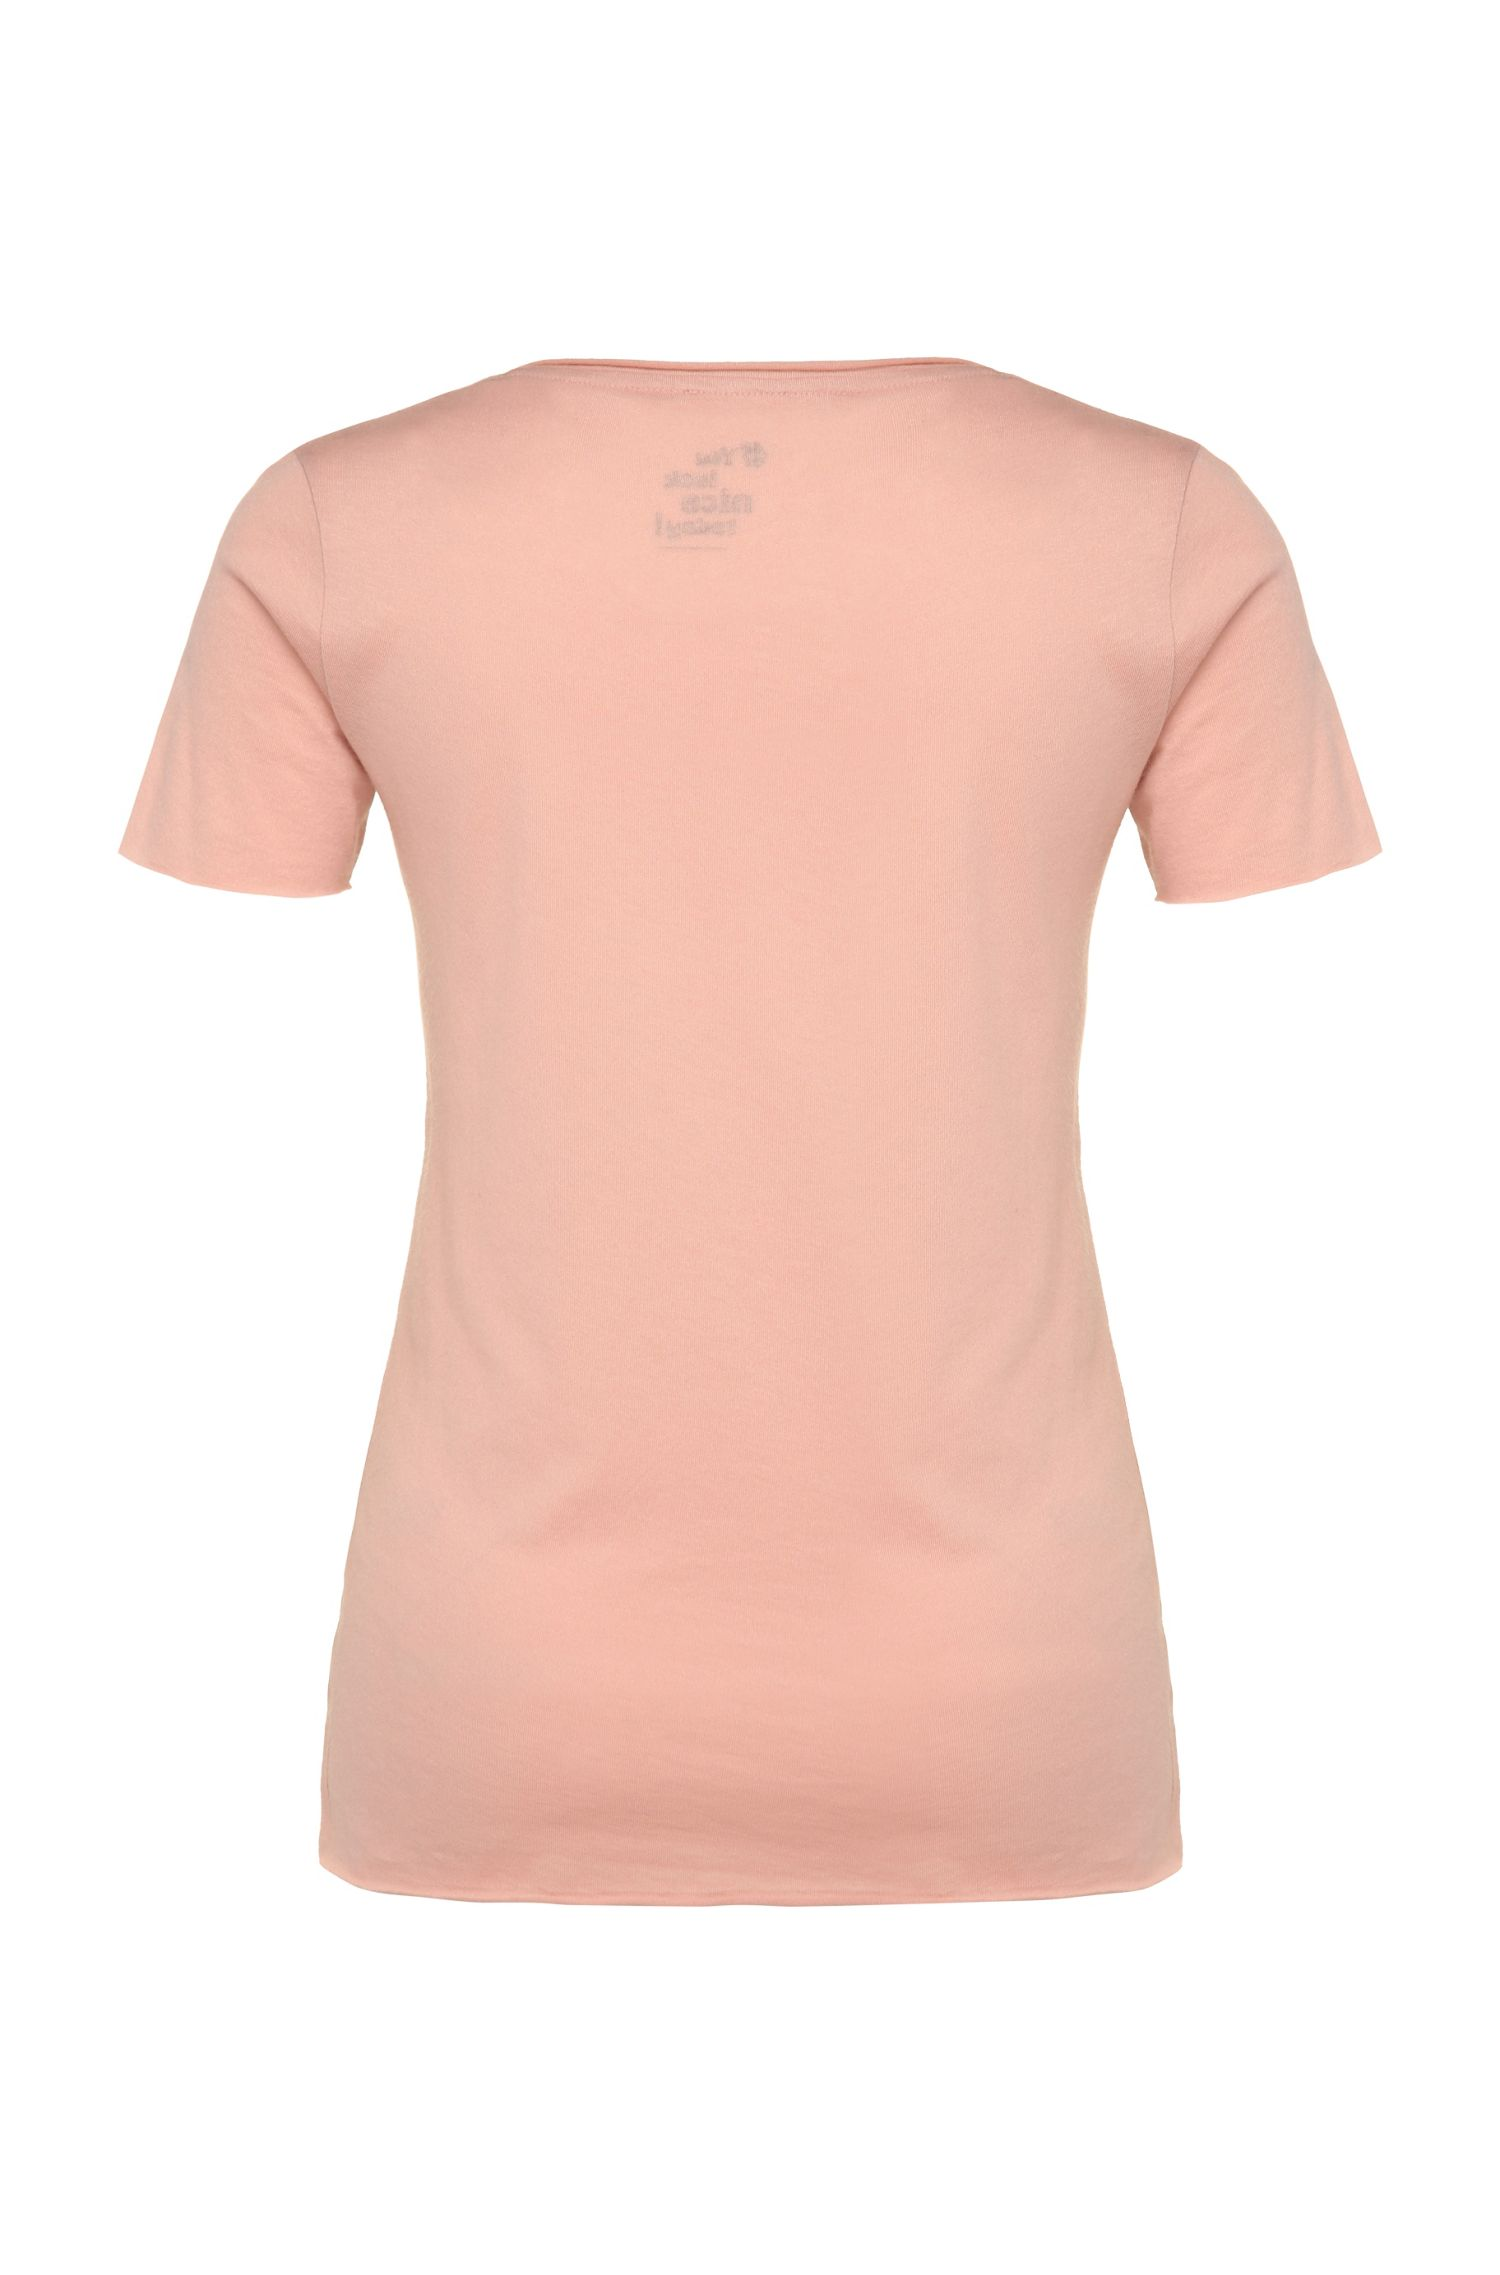 Slim-Fit T-Shirt aus Baumwoll-Mix mit Modal mit Print: ´Tasensation`